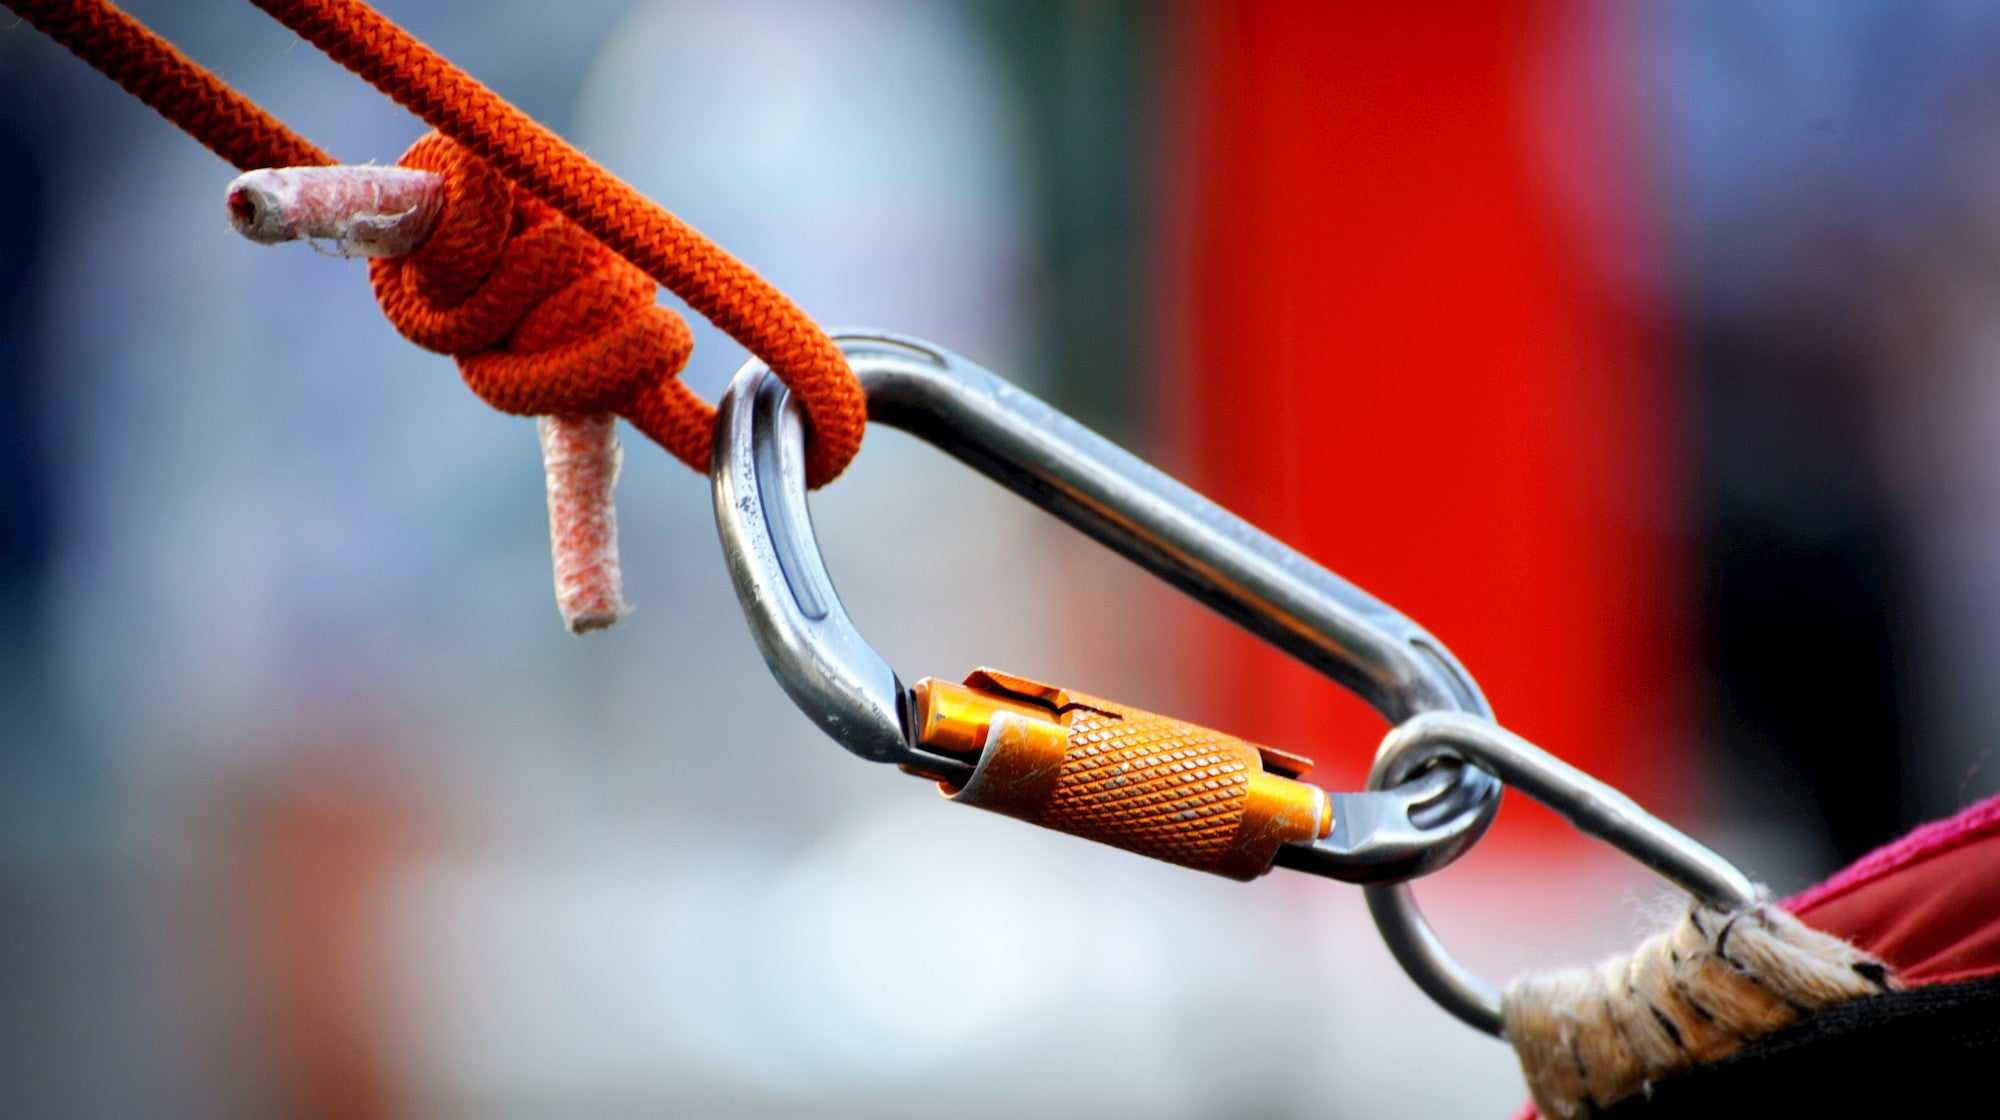 What Is A Carabiner And What Can I Do With One